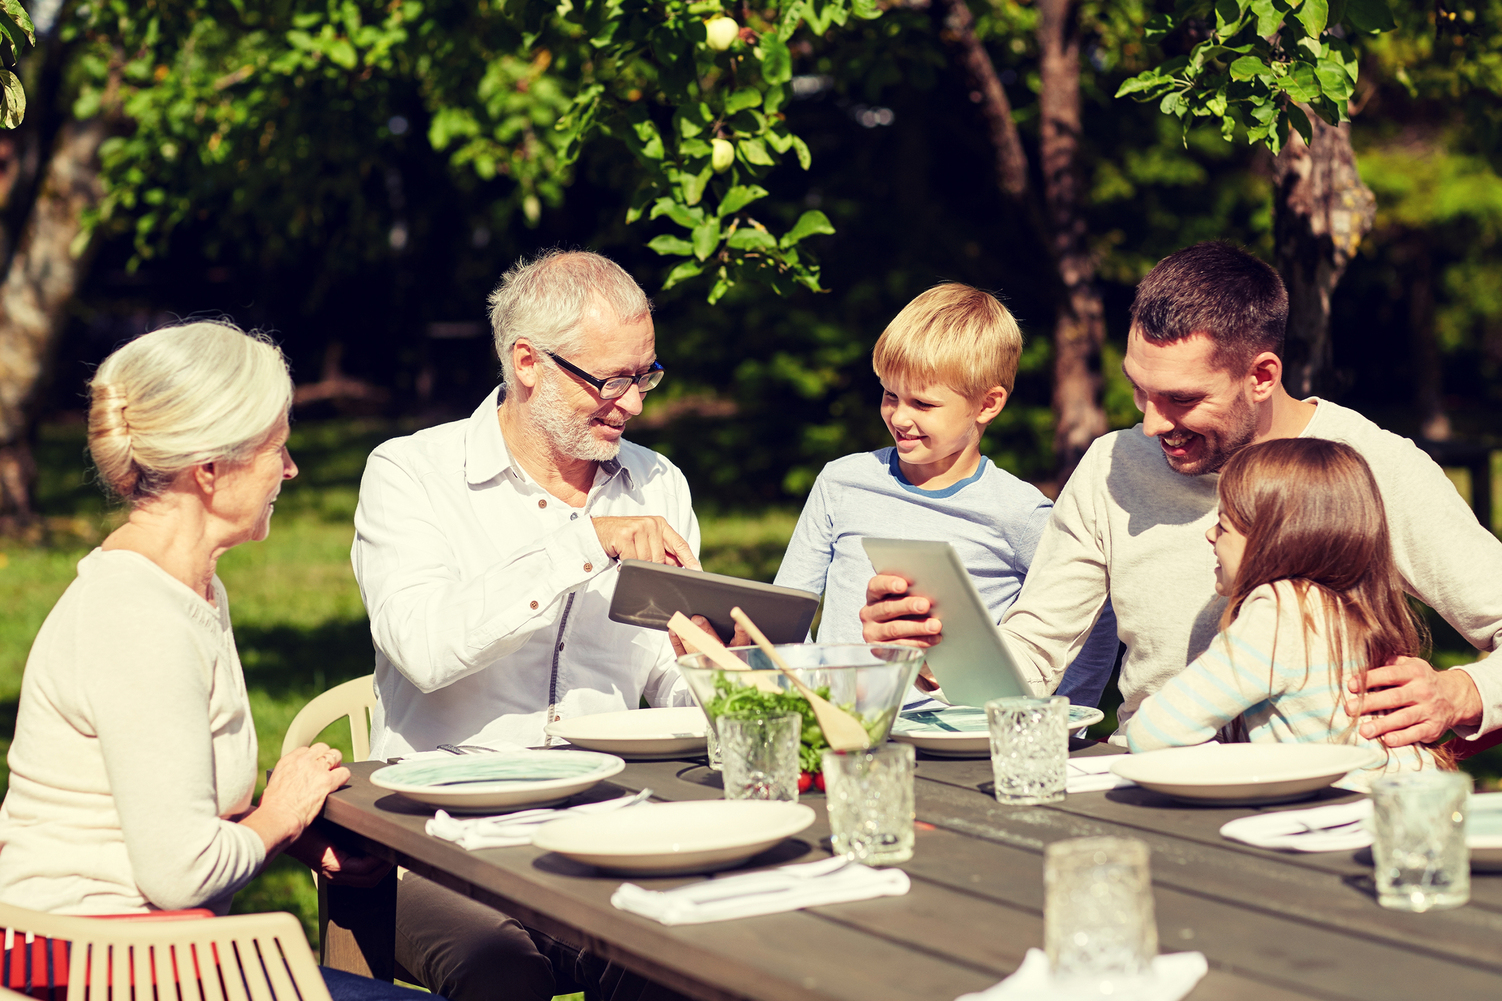 Multigenerational family sitting at a table looking at computers